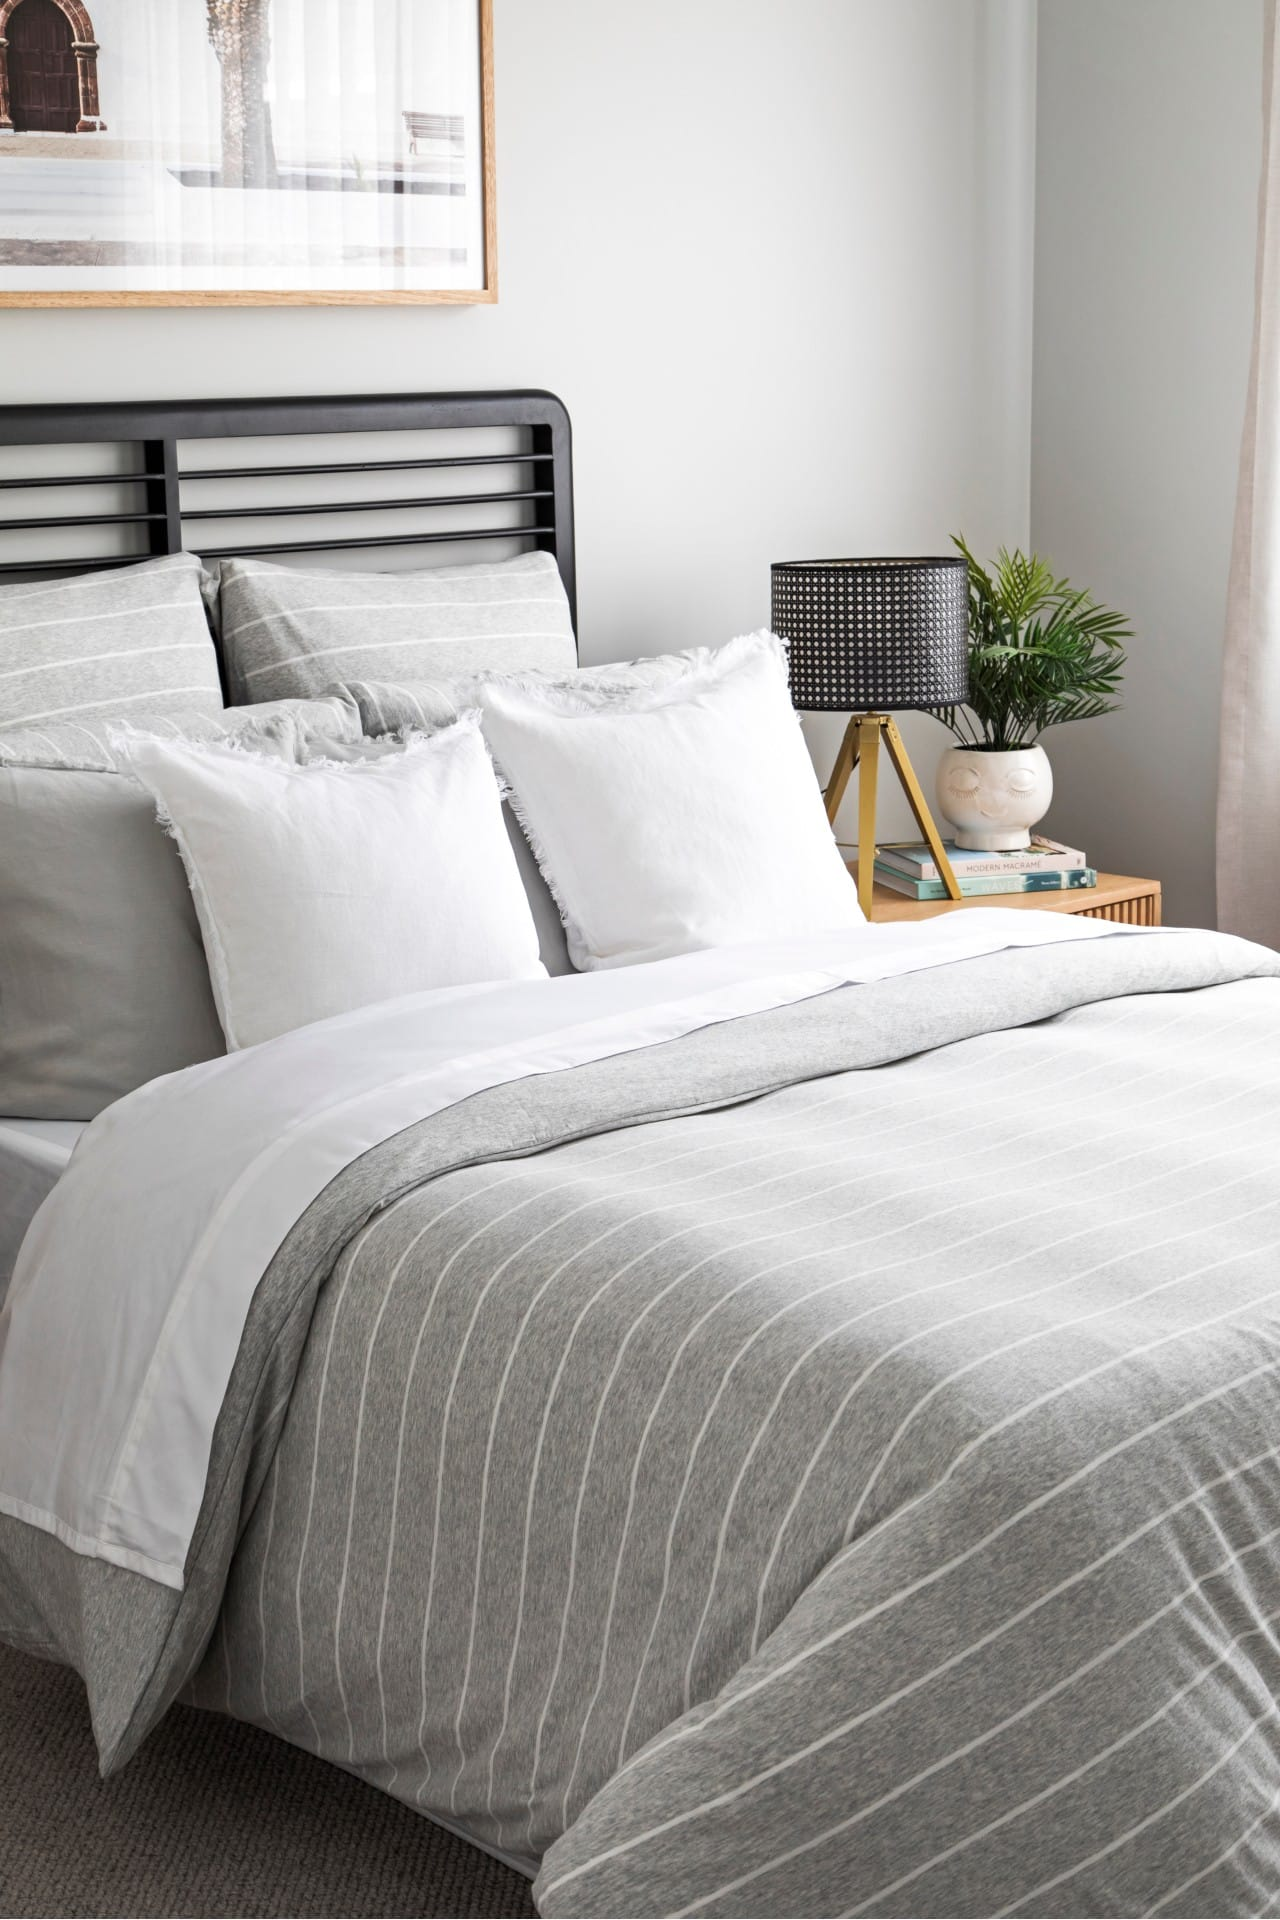 lorraine lea henley jersey bedding grey and white stripe quilt cover set in neutral bedroom